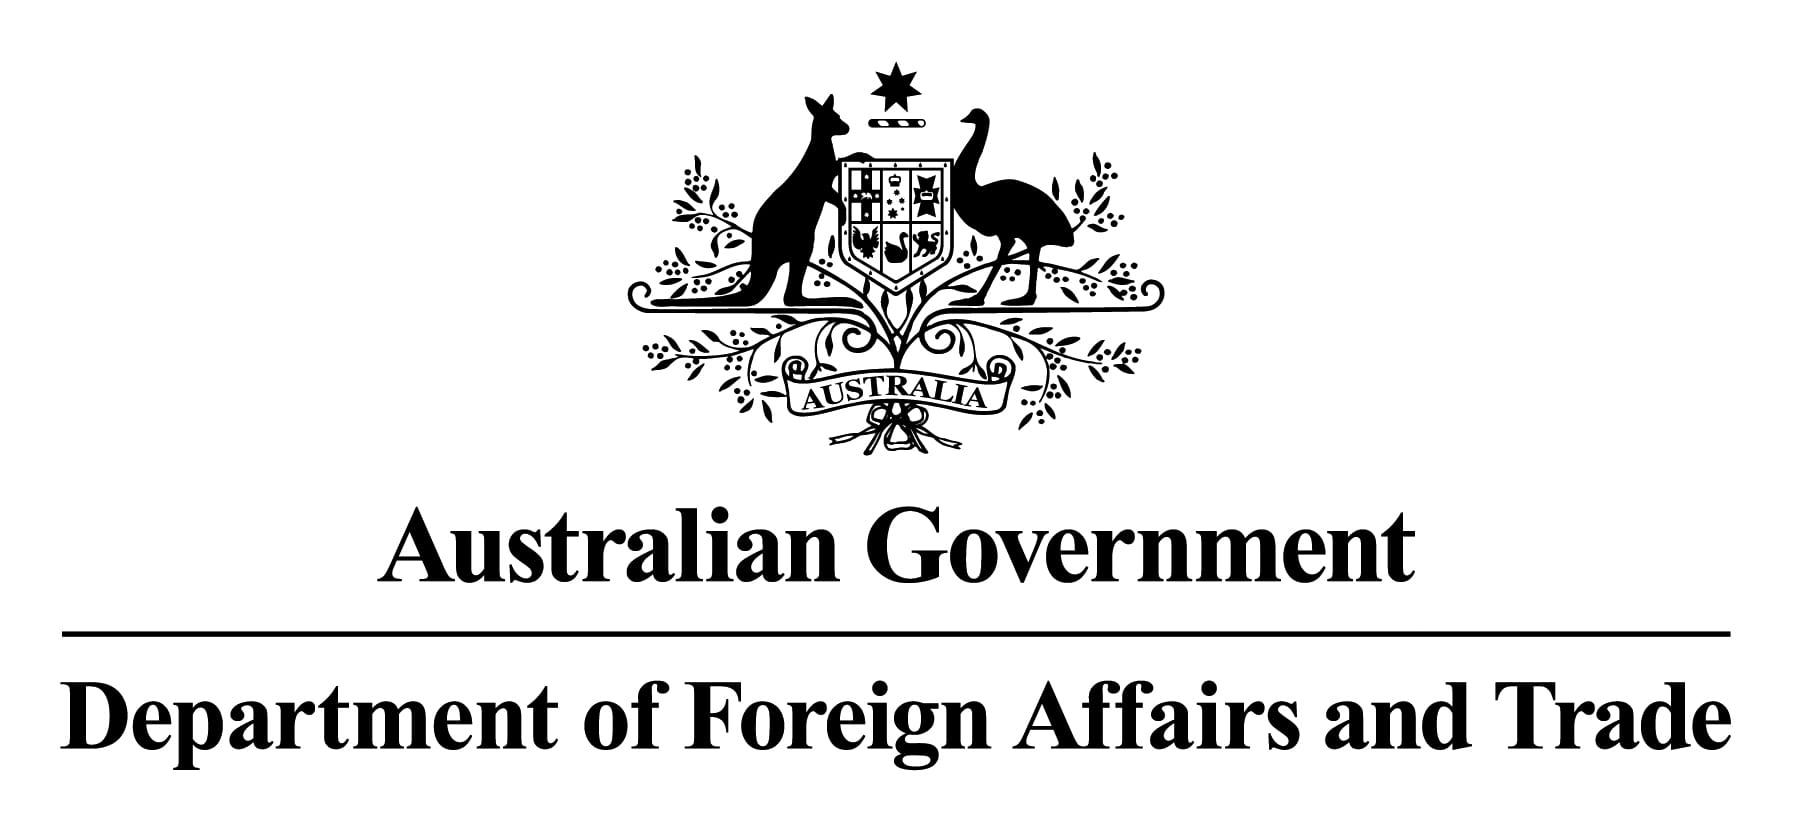 Department of Foreign Affairs and Trade of Australia